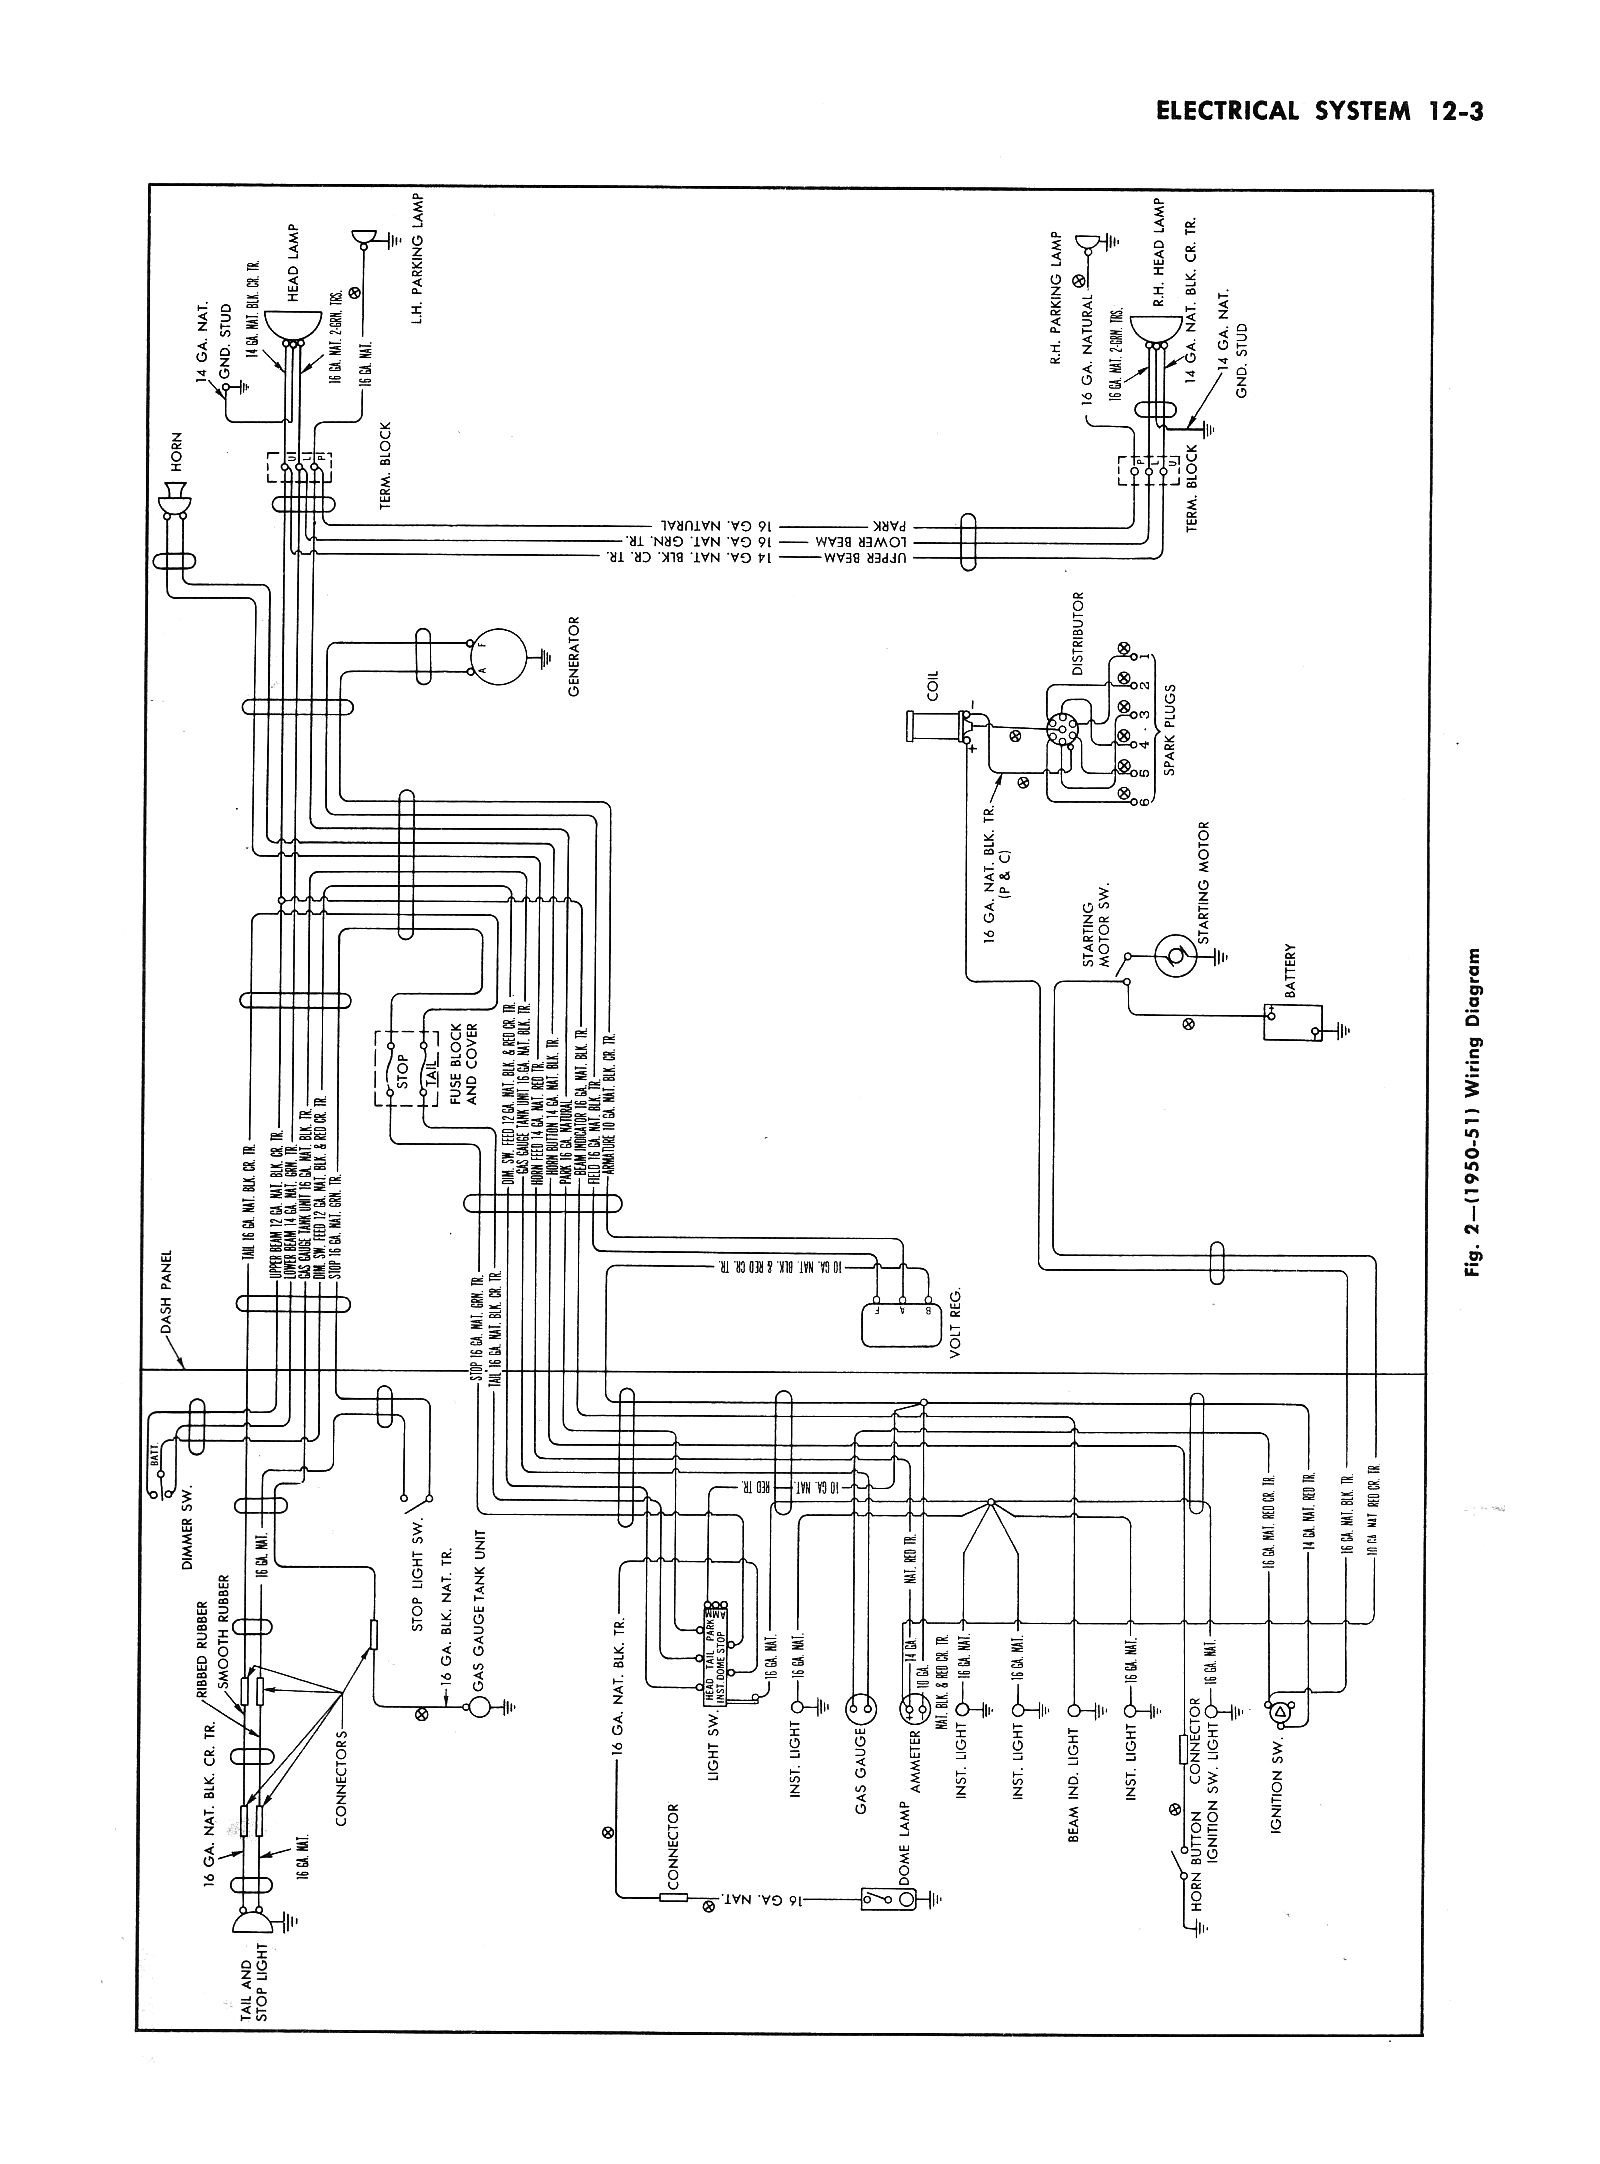 50ctsm1203 chevy wiring diagrams 1959 chevy truck wiring diagram at webbmarketing.co